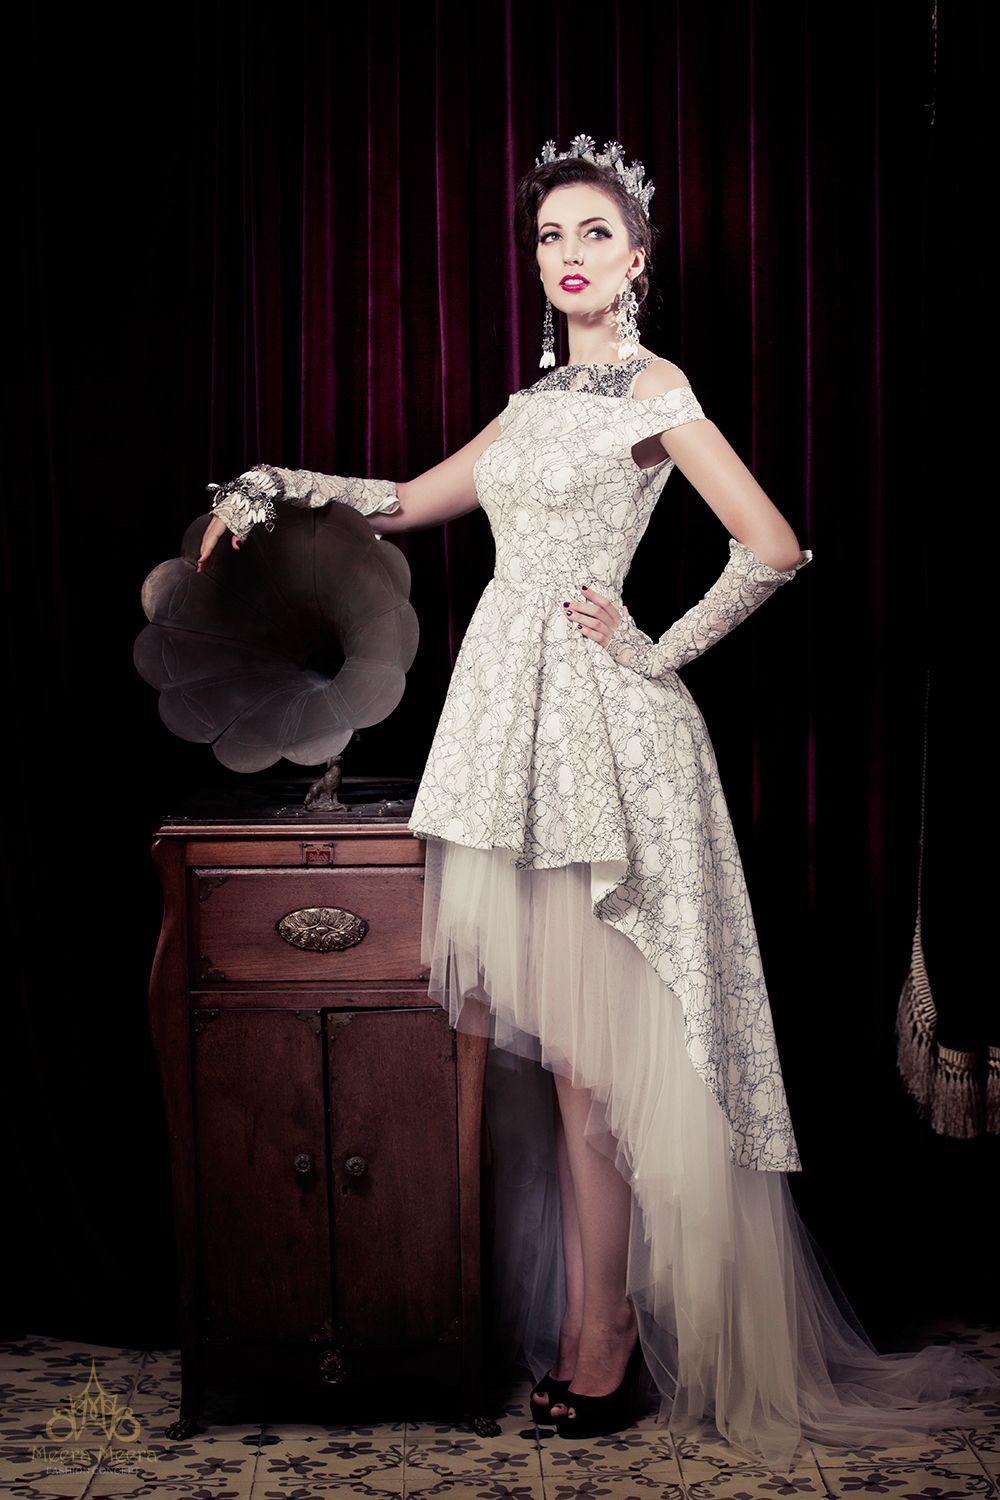 Classic mullet wedding dress in black and white floral lace . See ...